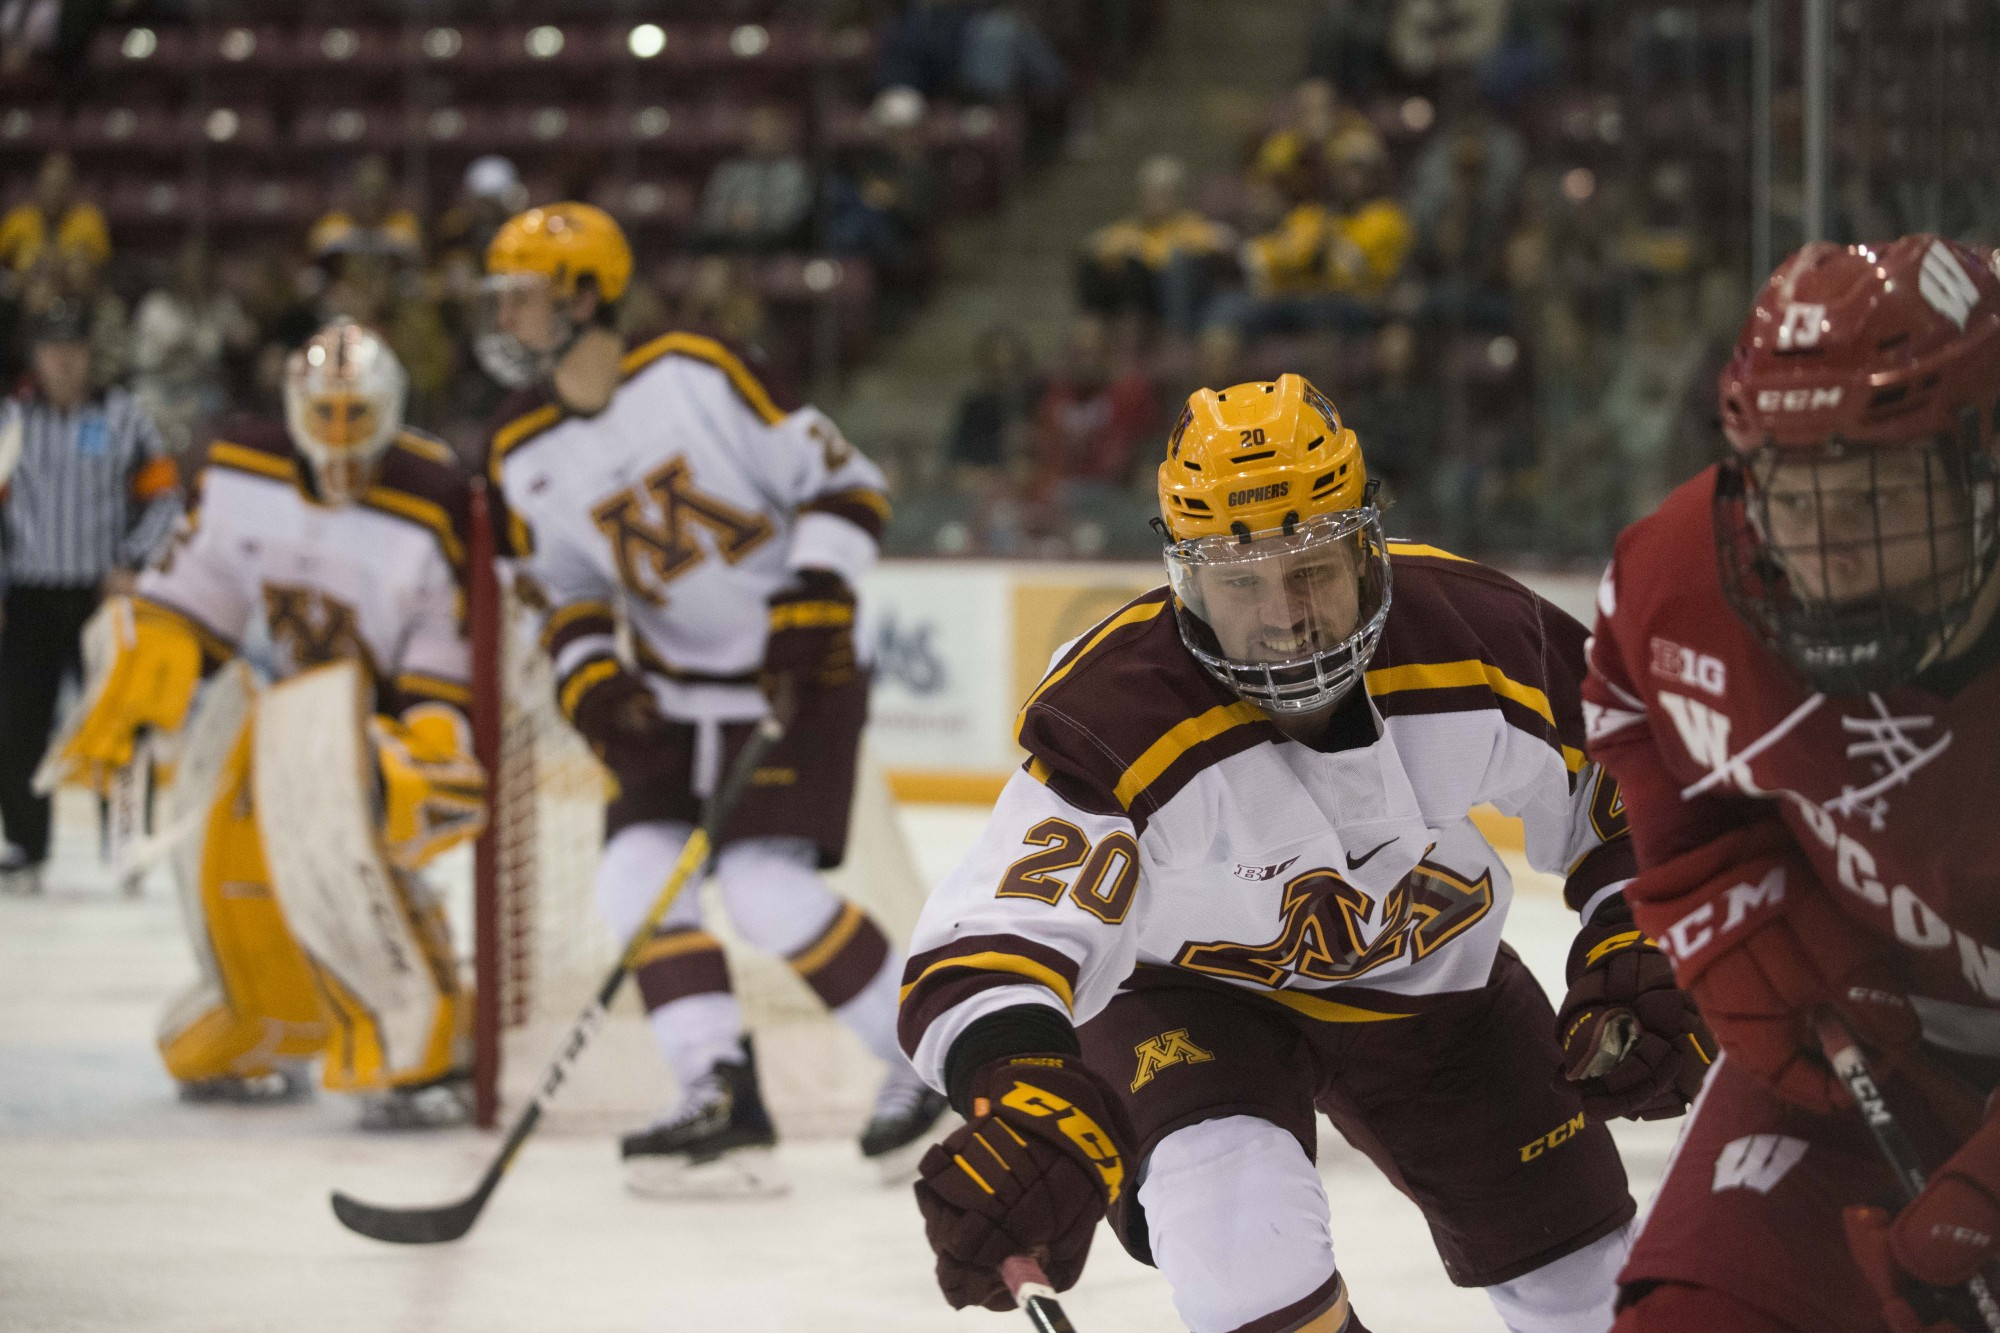 Defender Ryan Zuhlsdorf skates after the puck during the game against the Wisconsin Badgers at 3M Arena at Mariucci on Friday, Nov. 22. The Gophers won 4-1.